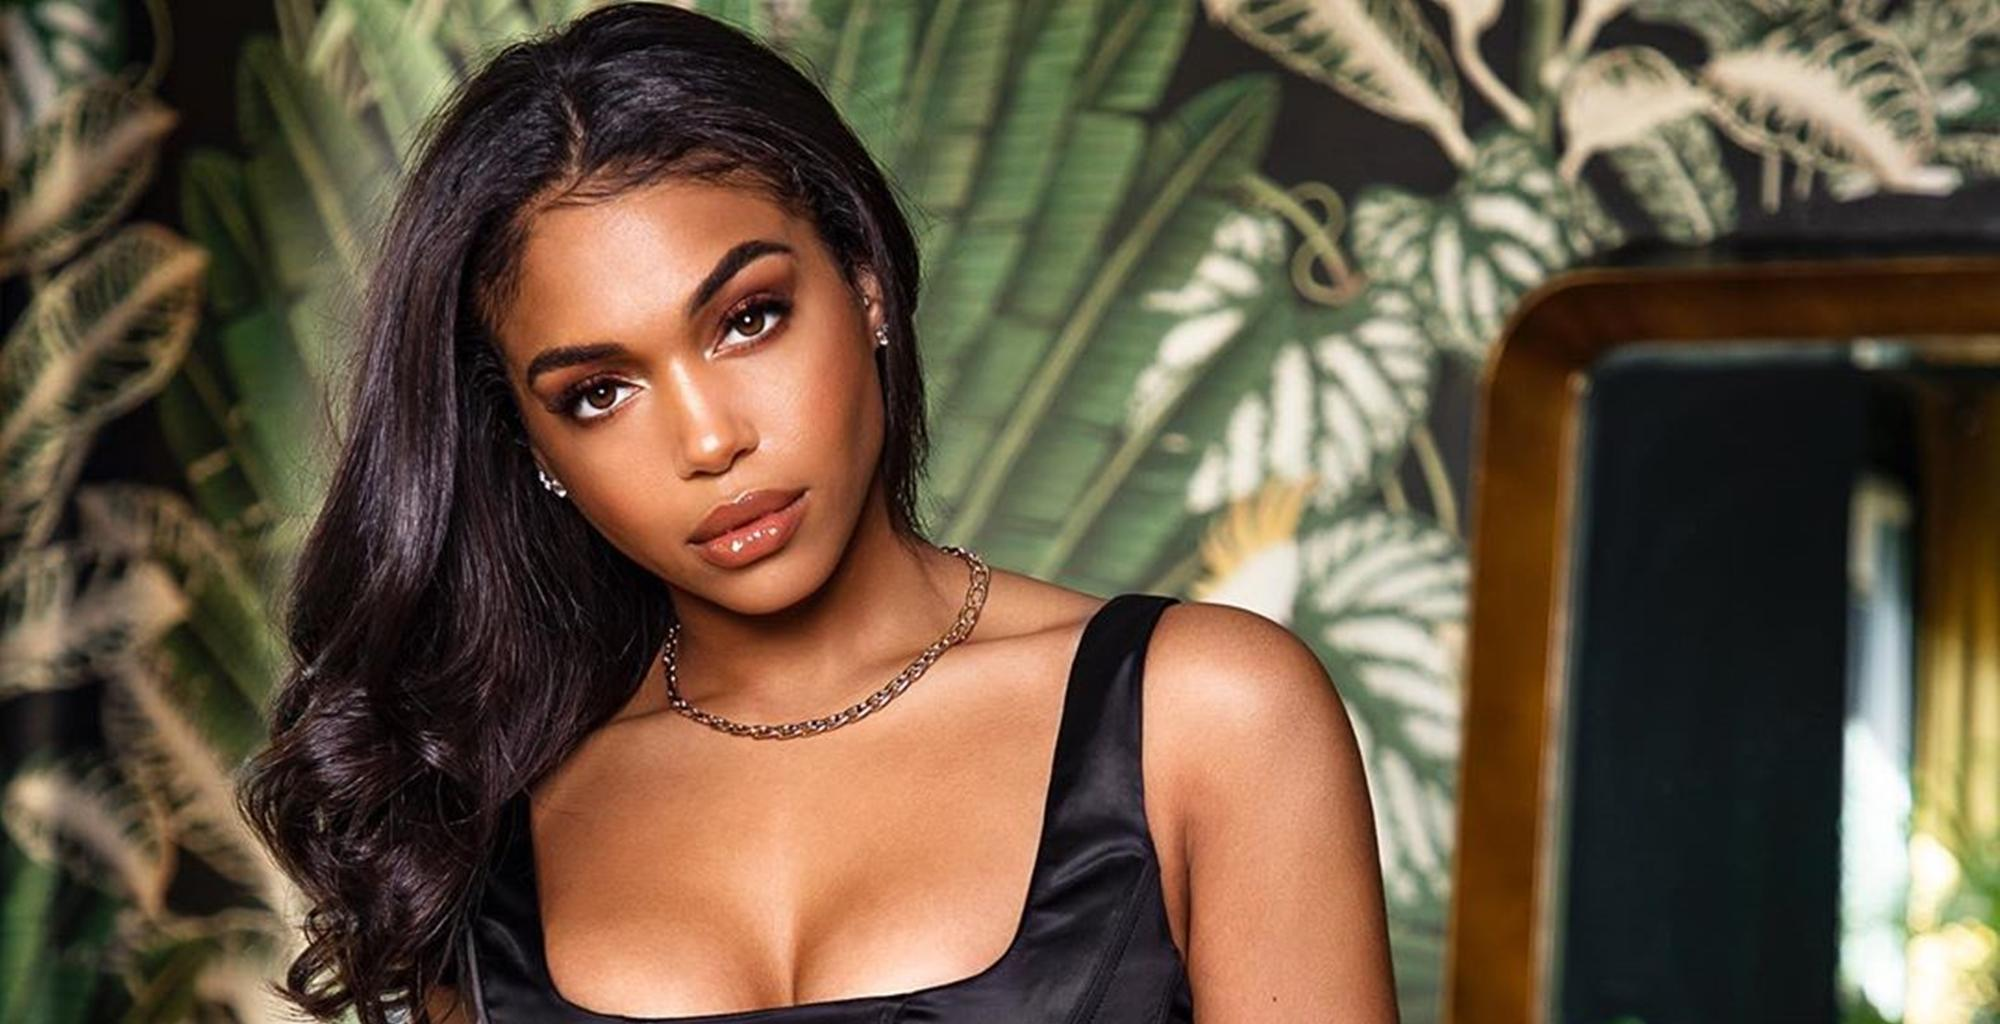 Lori Harvey Leaves Little To Future's Imagination In Gorgeous La Perla Lingerie Photos While Partying In Miami Amid Engagement Rumors -- Will Stepdad Steve Harvey Approve?